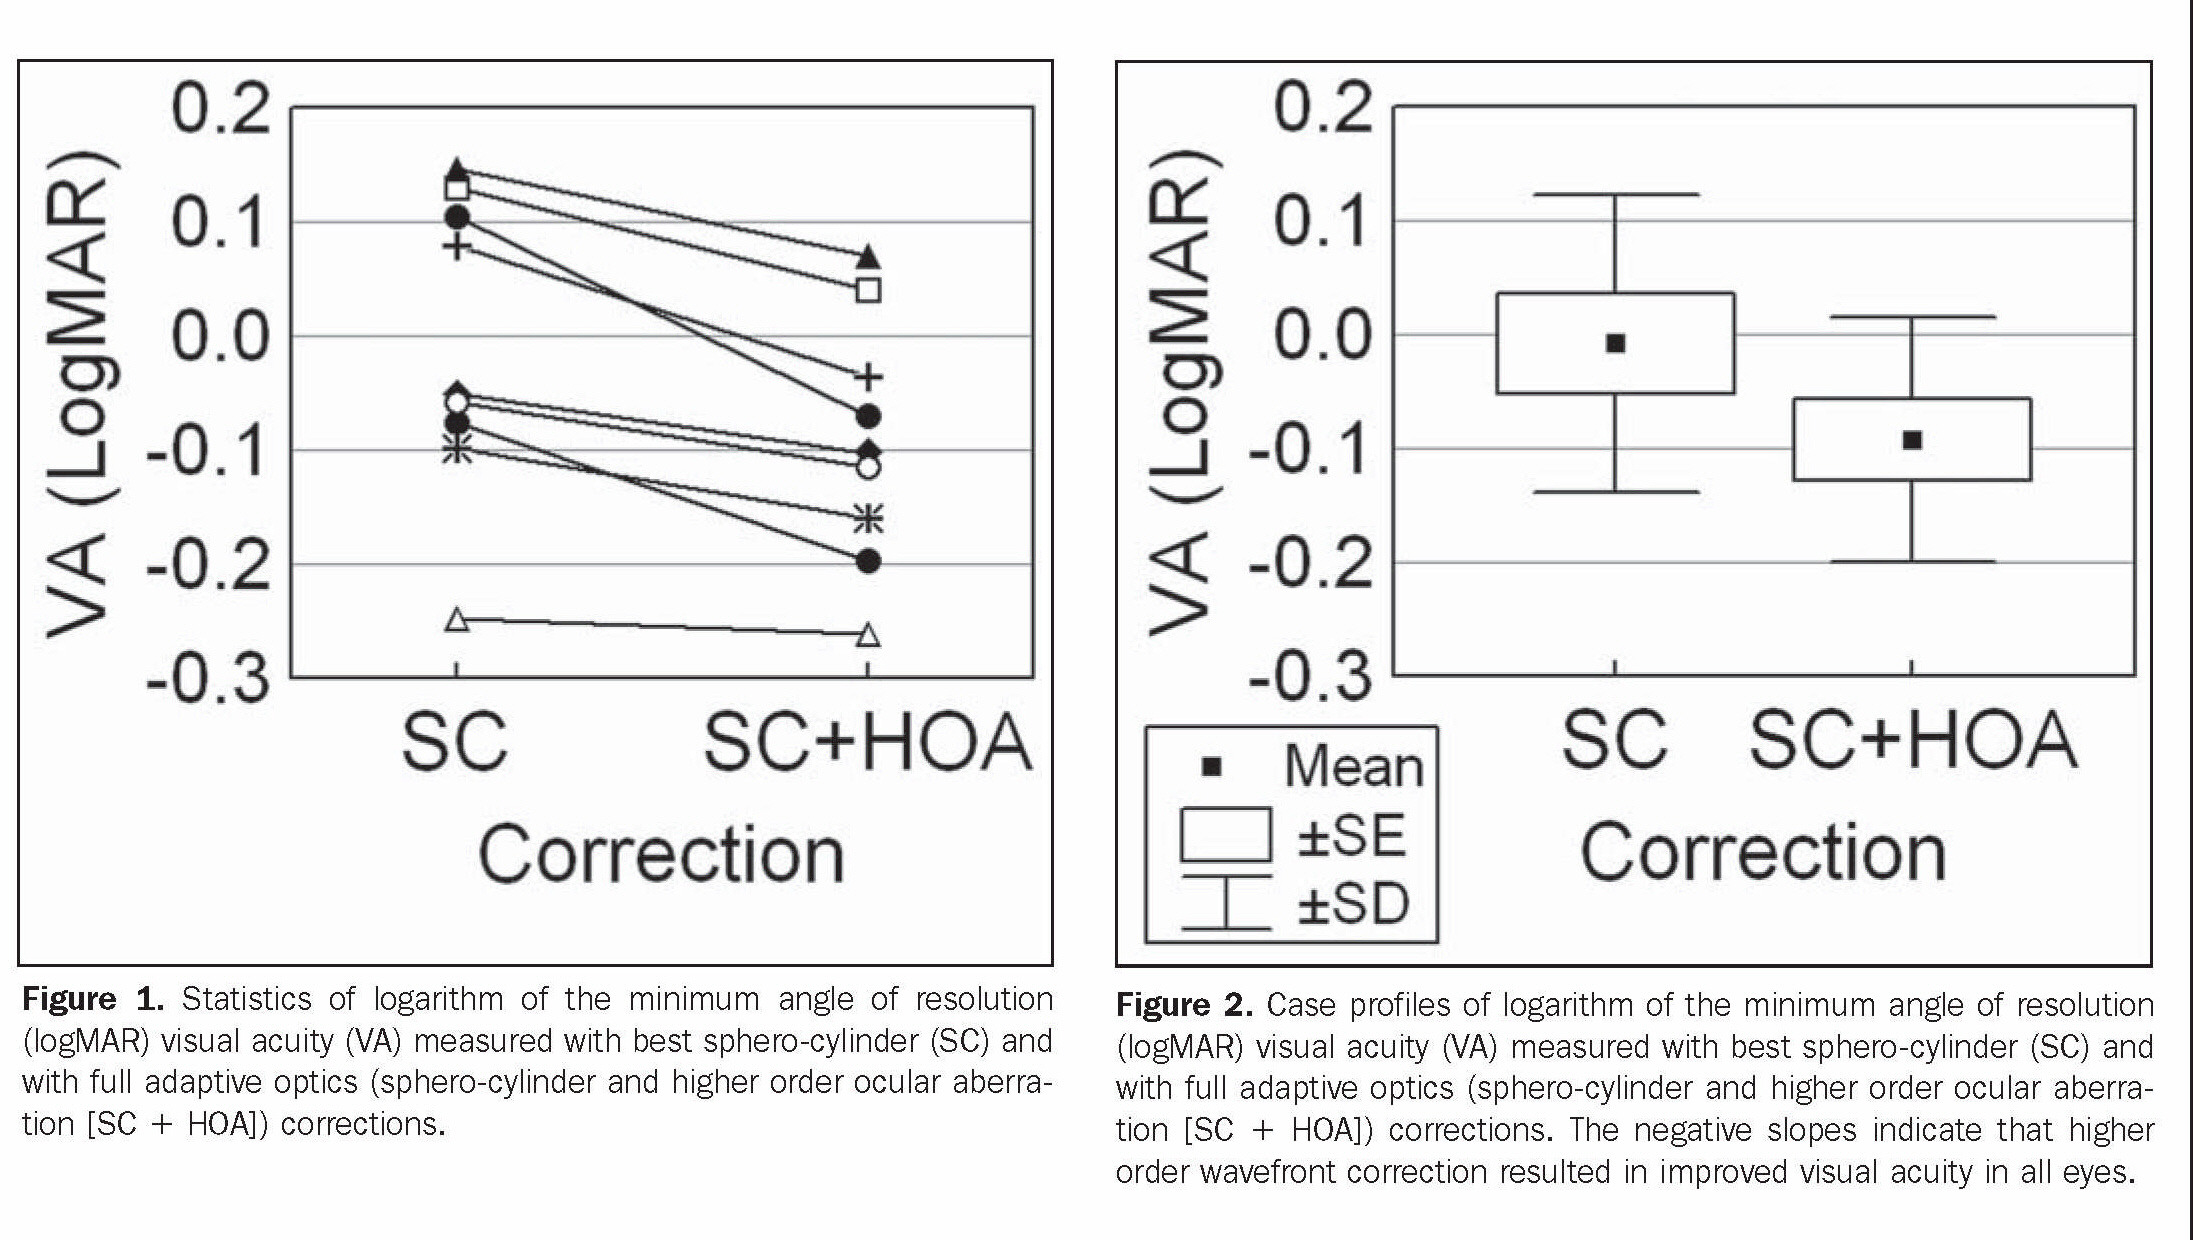 Effects Of Zernike Wavefront Aberrations On Visual Acuity Measured Using Electromagnetic